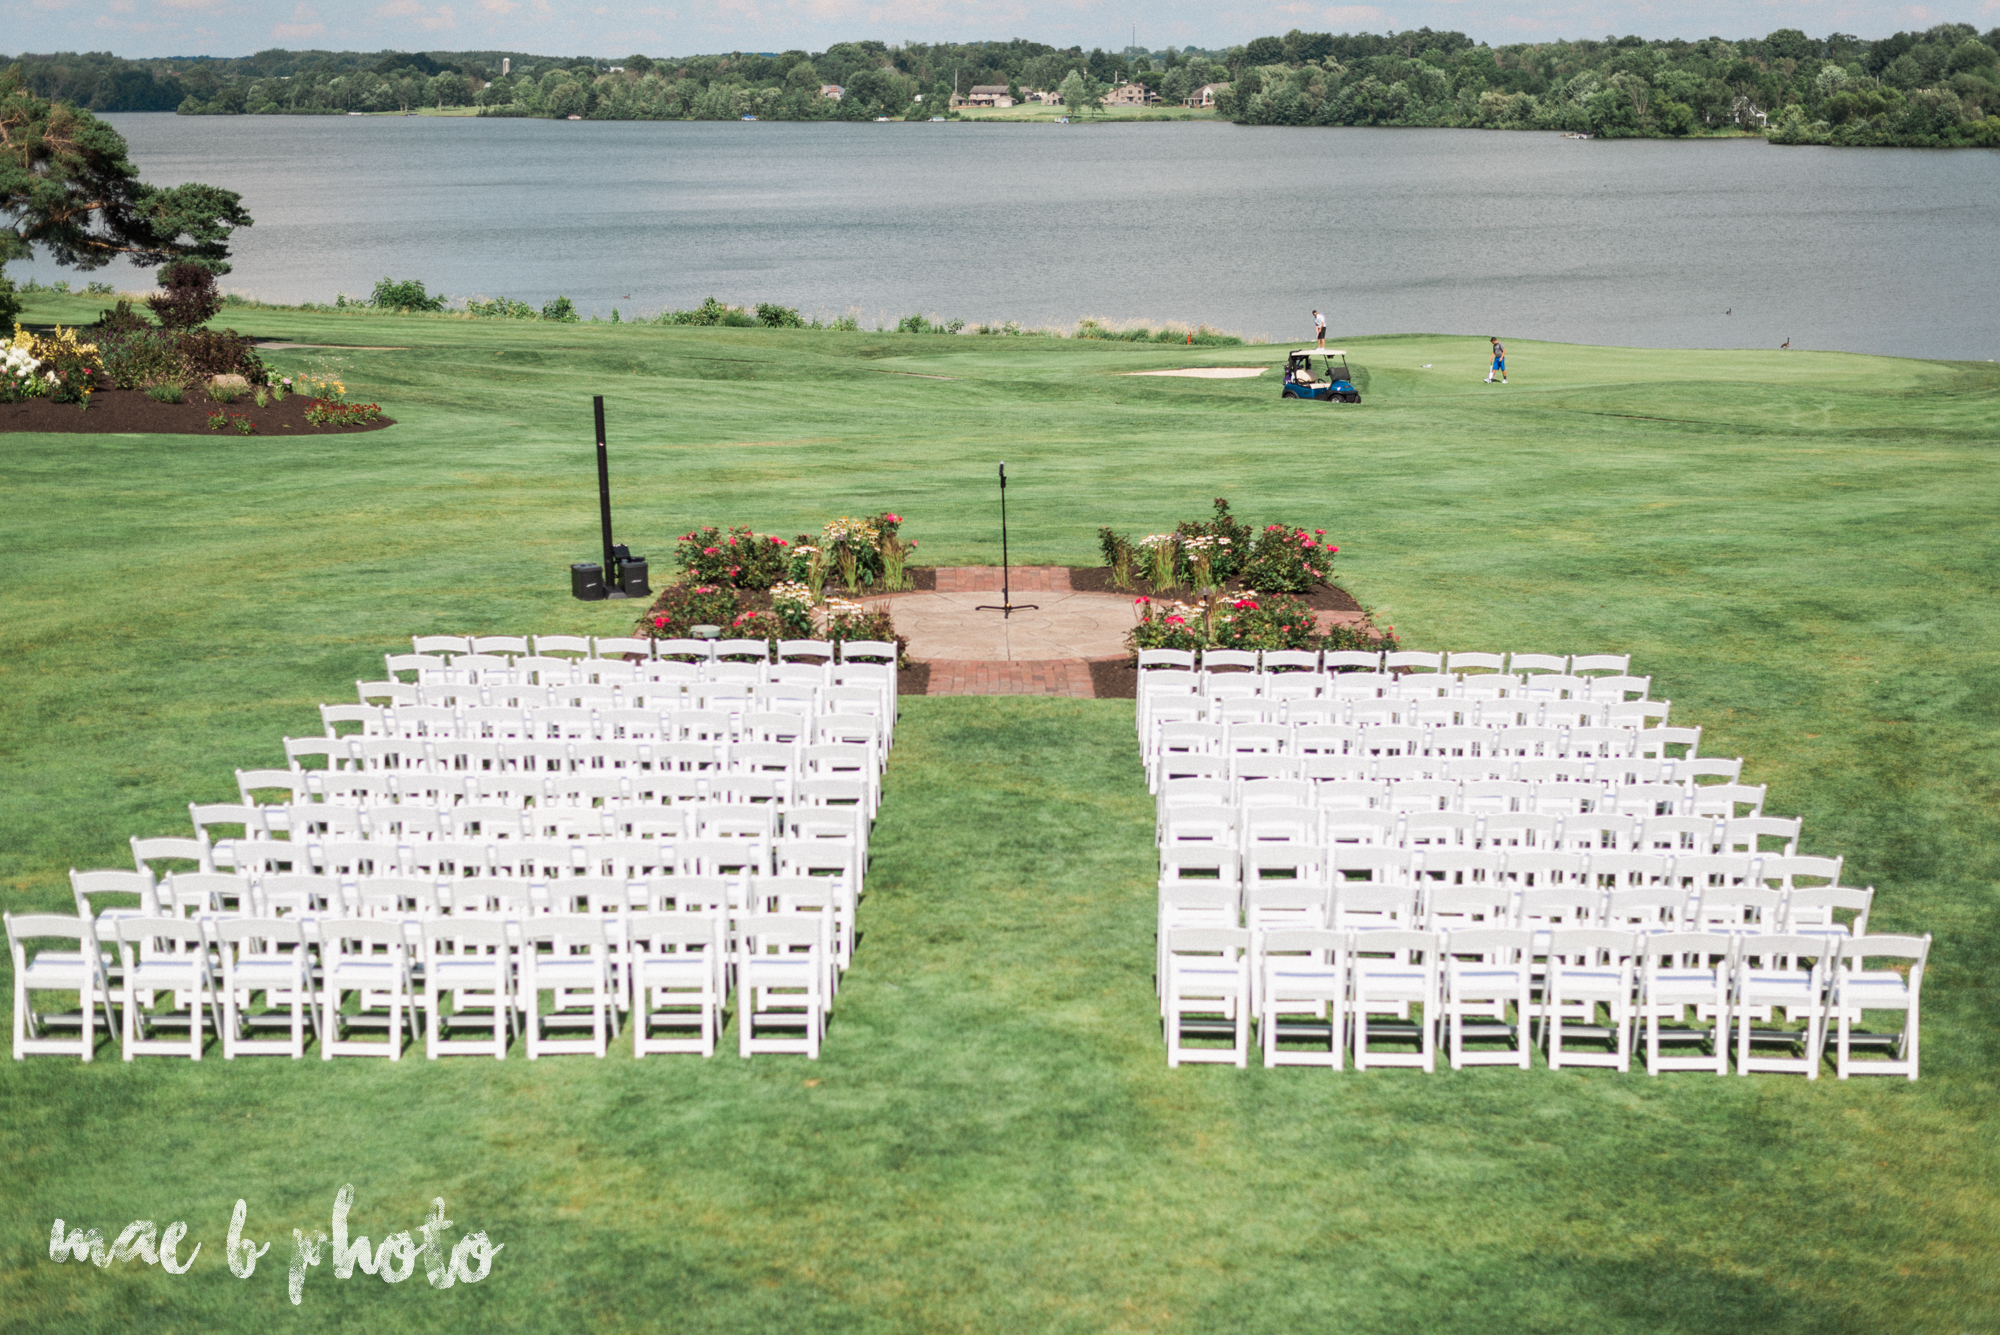 emily and michael's industrial chic summer country club wedding at the lake club in poland ohio photographed by cleveland wedding photographer mae b photo-83.jpg